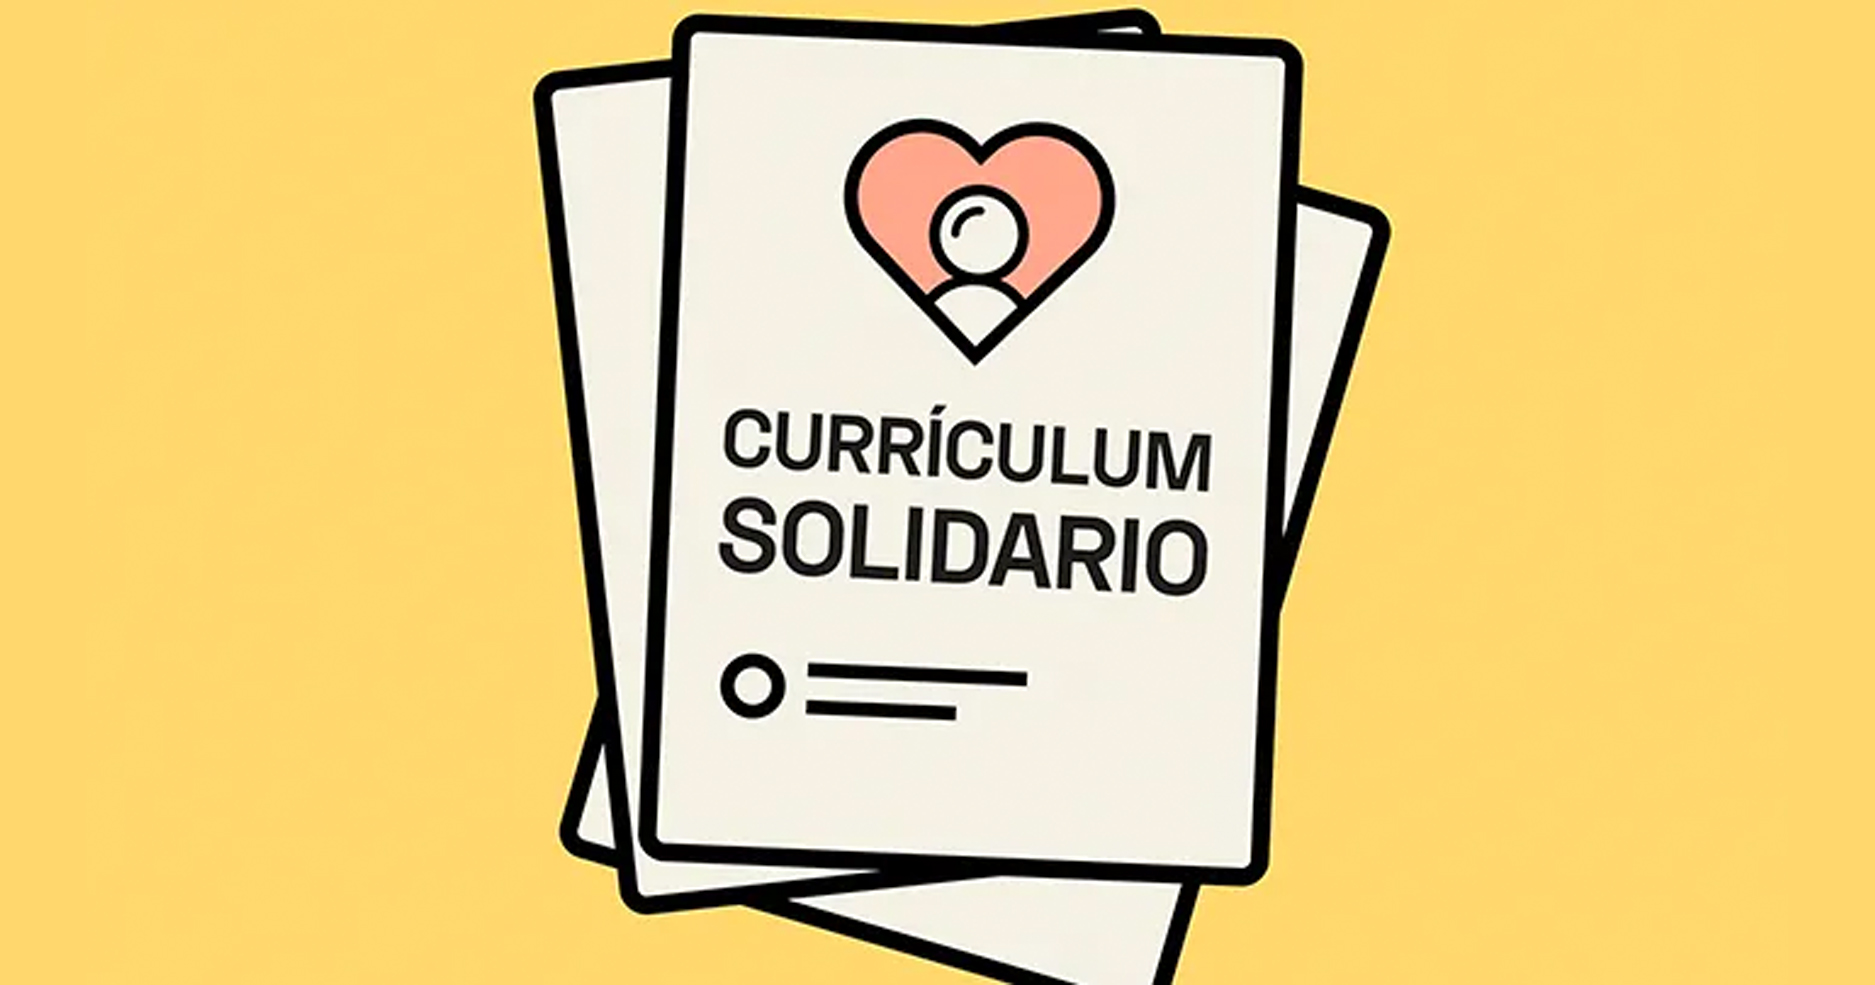 creatyum-media-curriculum-solidario